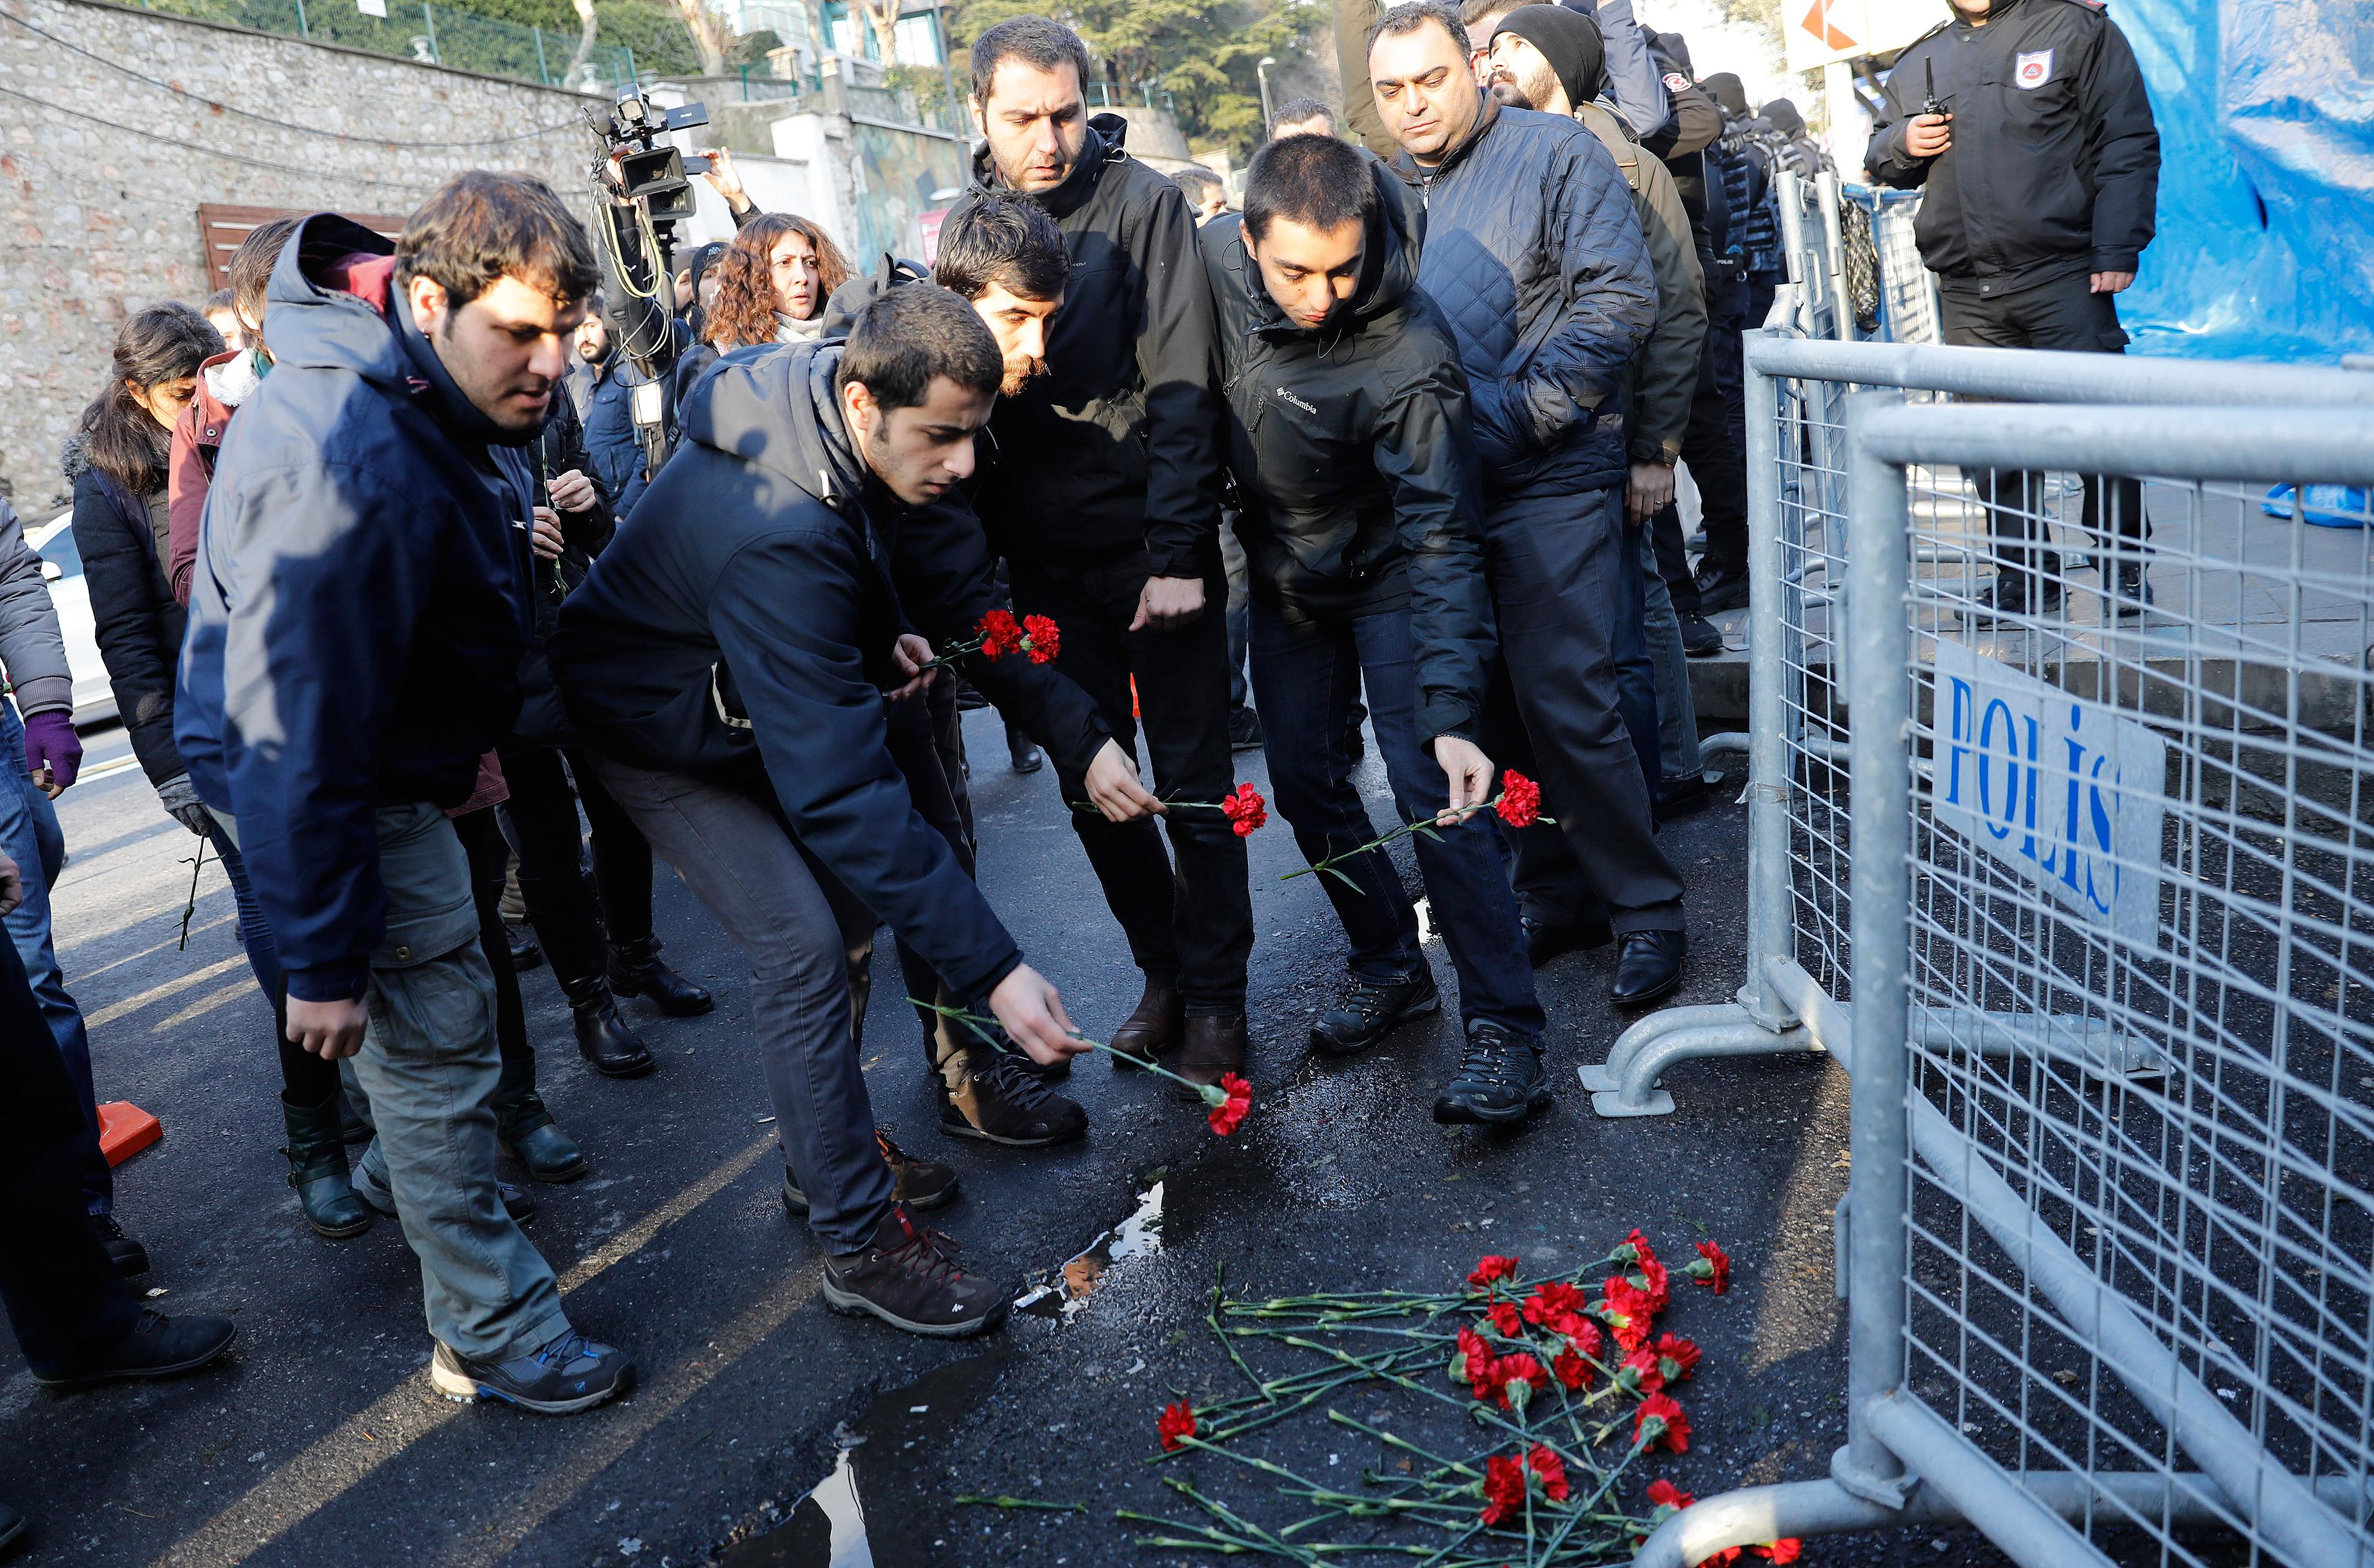 39 killed, 40 wounded in attack on Istanbul nightclub